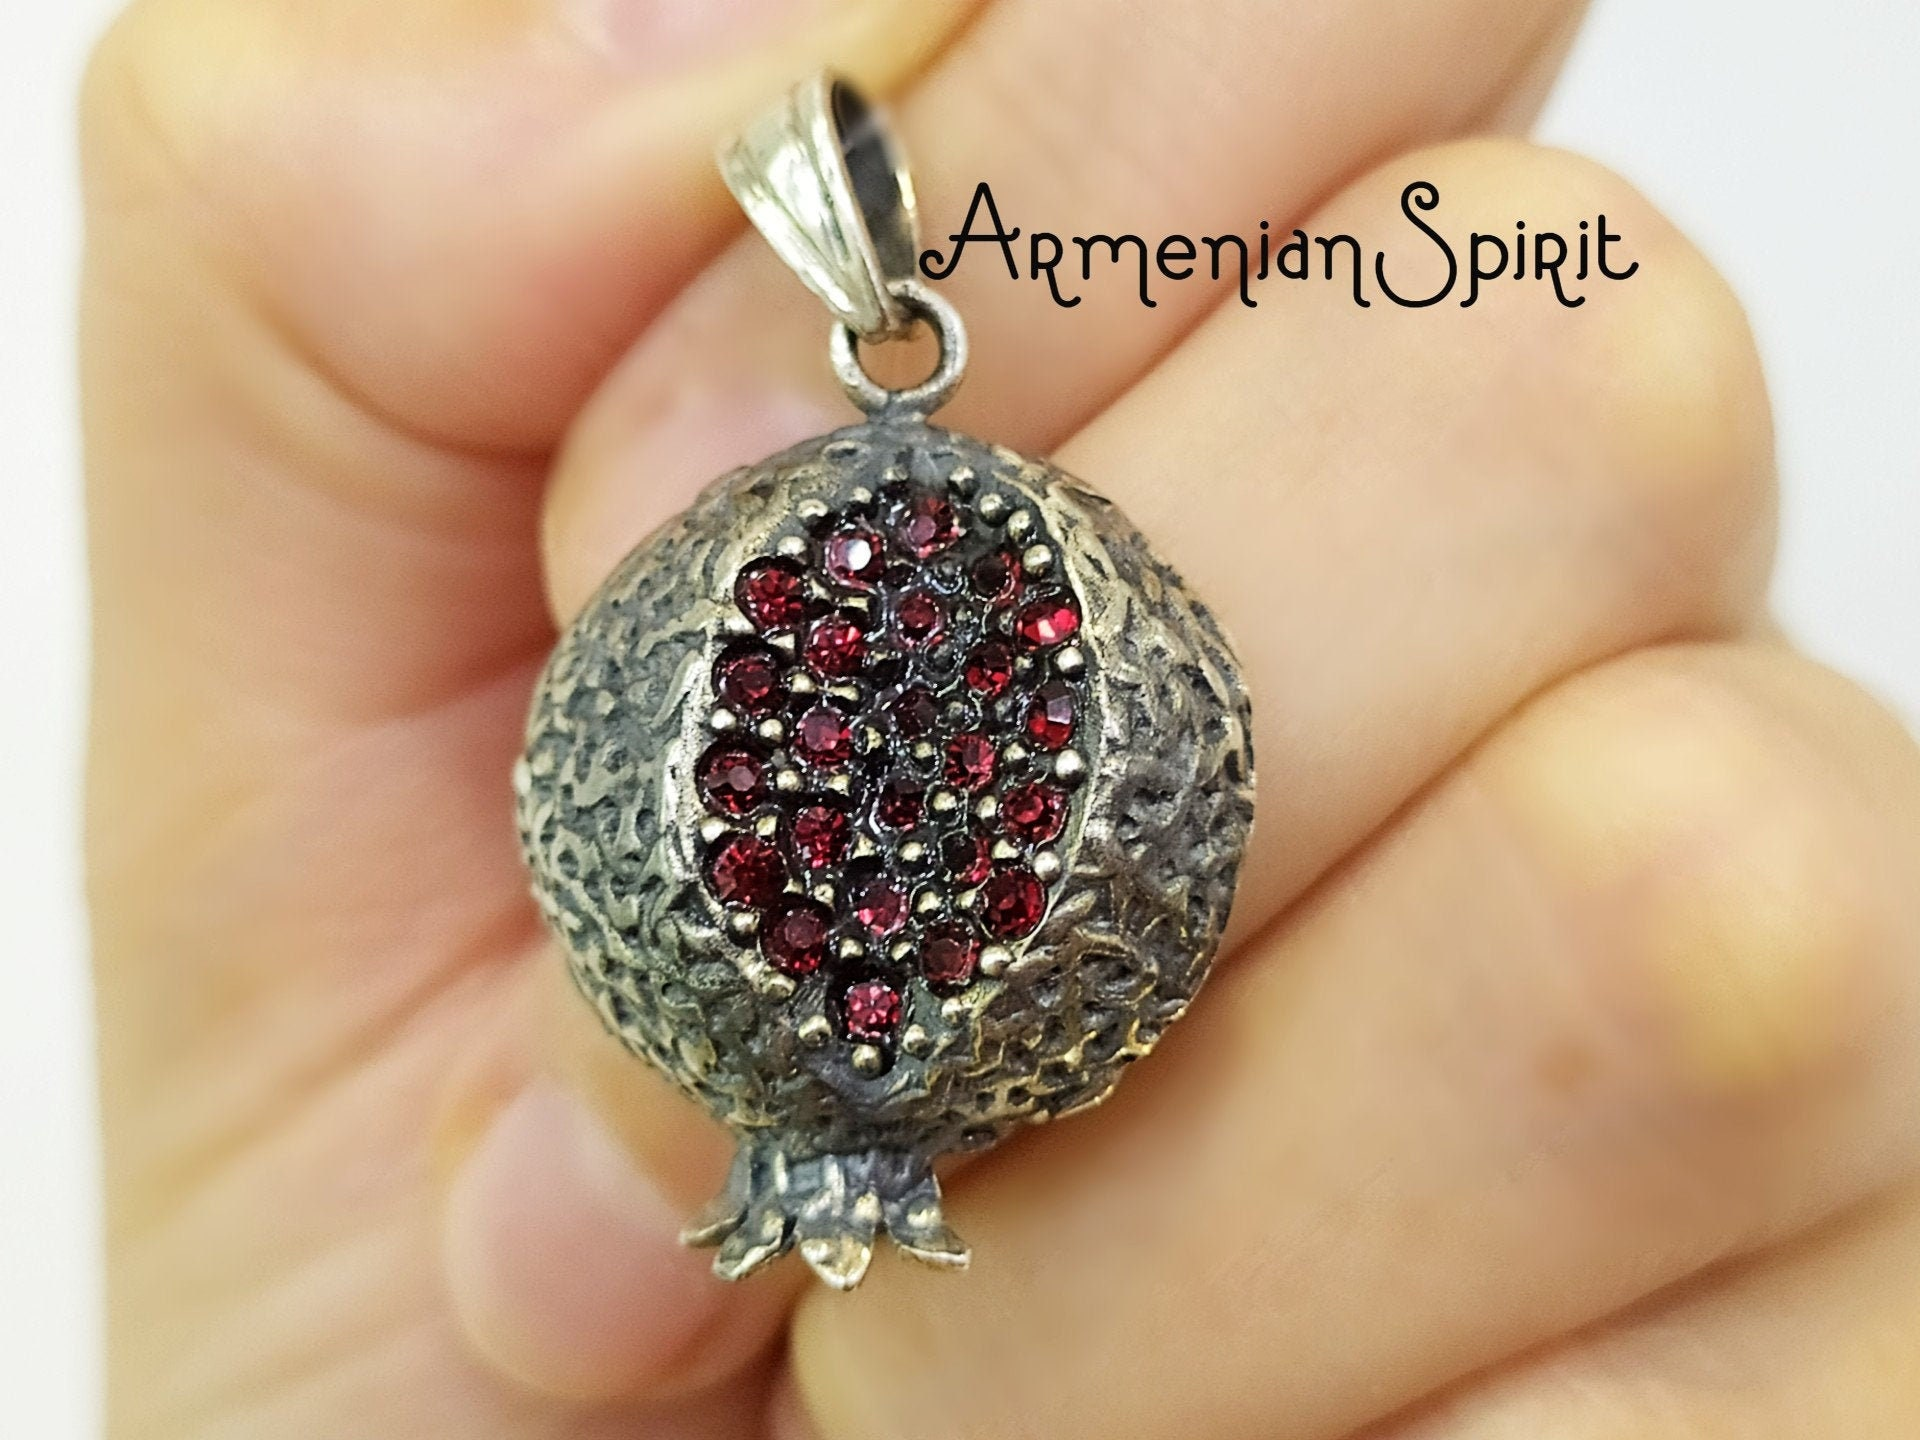 Judaica Jewelry Sterling Silver Pomegranate Pendant Pomegranate Pendant Necklace Red Crystals Gift for Her Pomegranate Jewelry